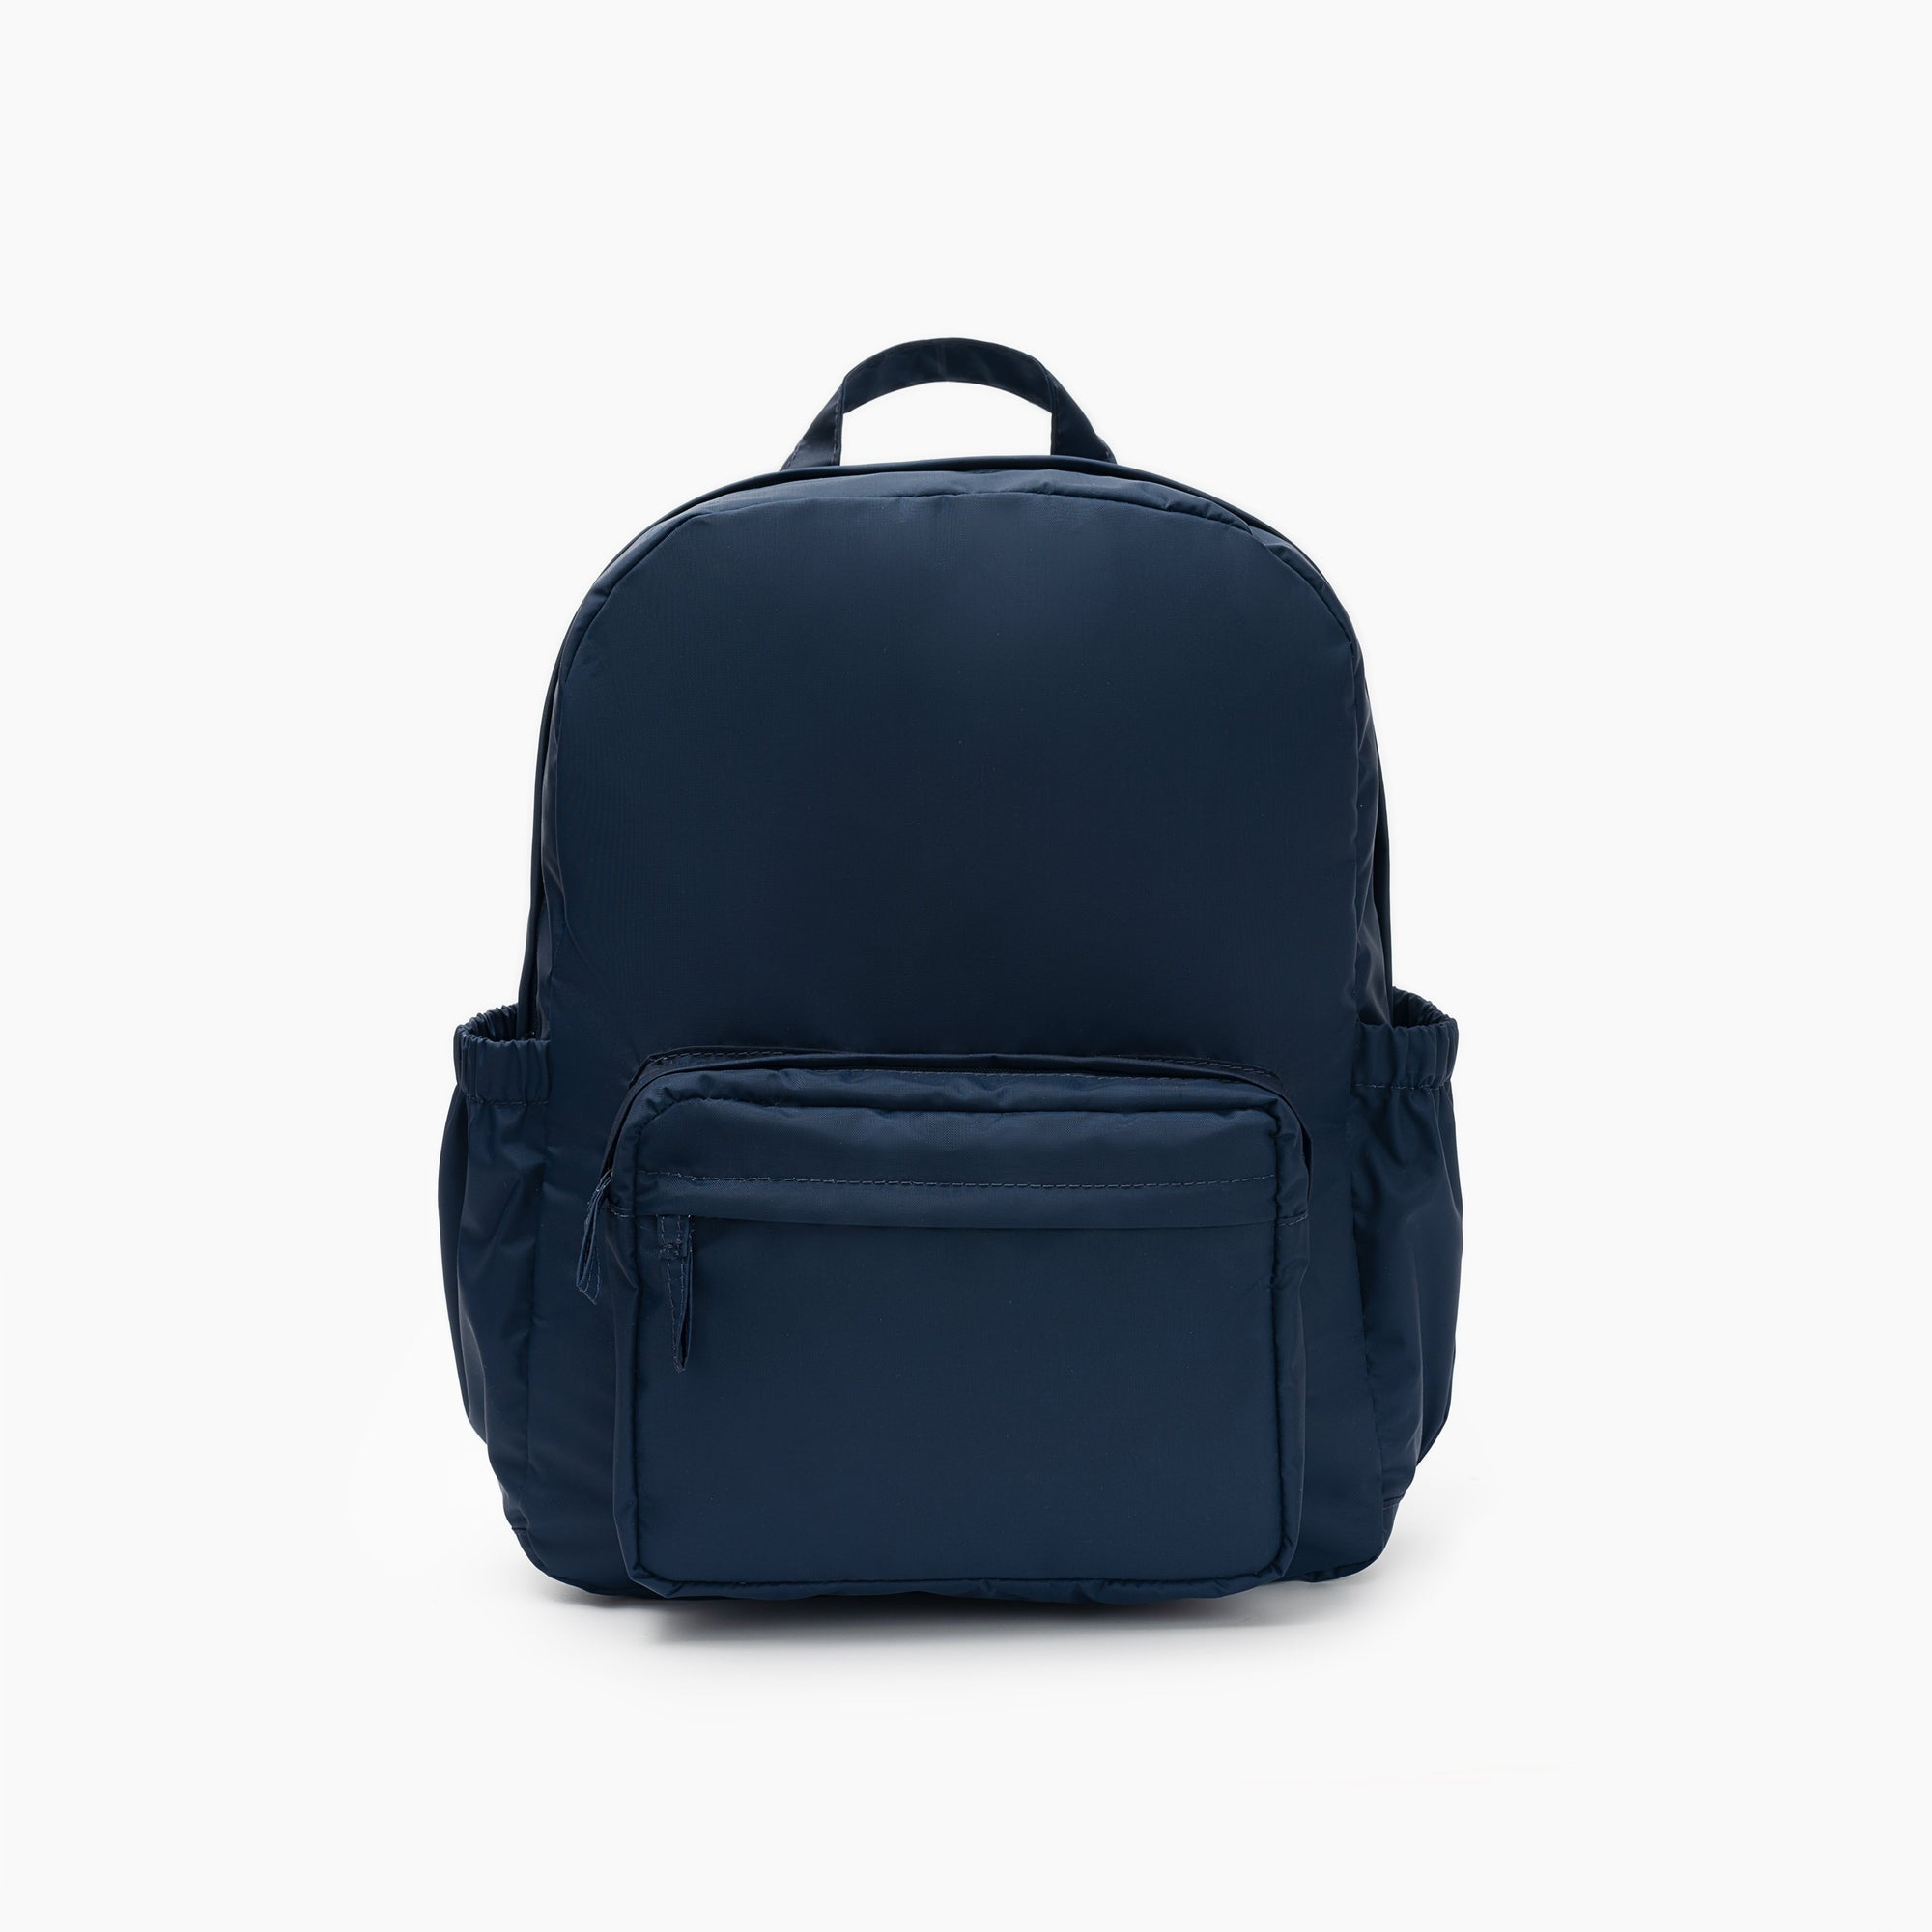 Cosmo Backpack - Insecta Shoes